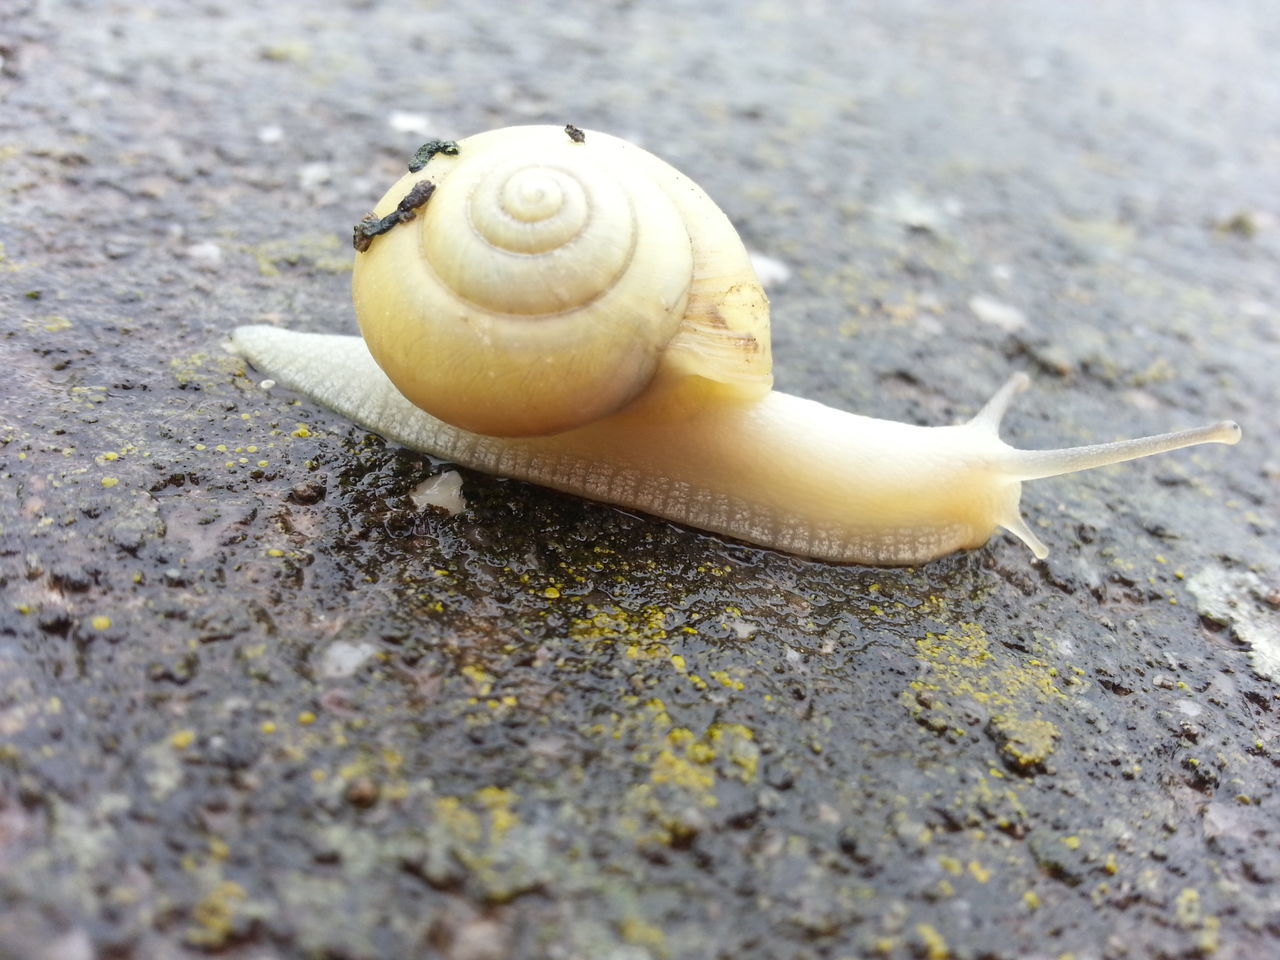 Animal Themes Animals In The Wild Close-up Day Escargot Garden Snail Gastropod Horizontal Nature No People One Animal Outdoors Snail